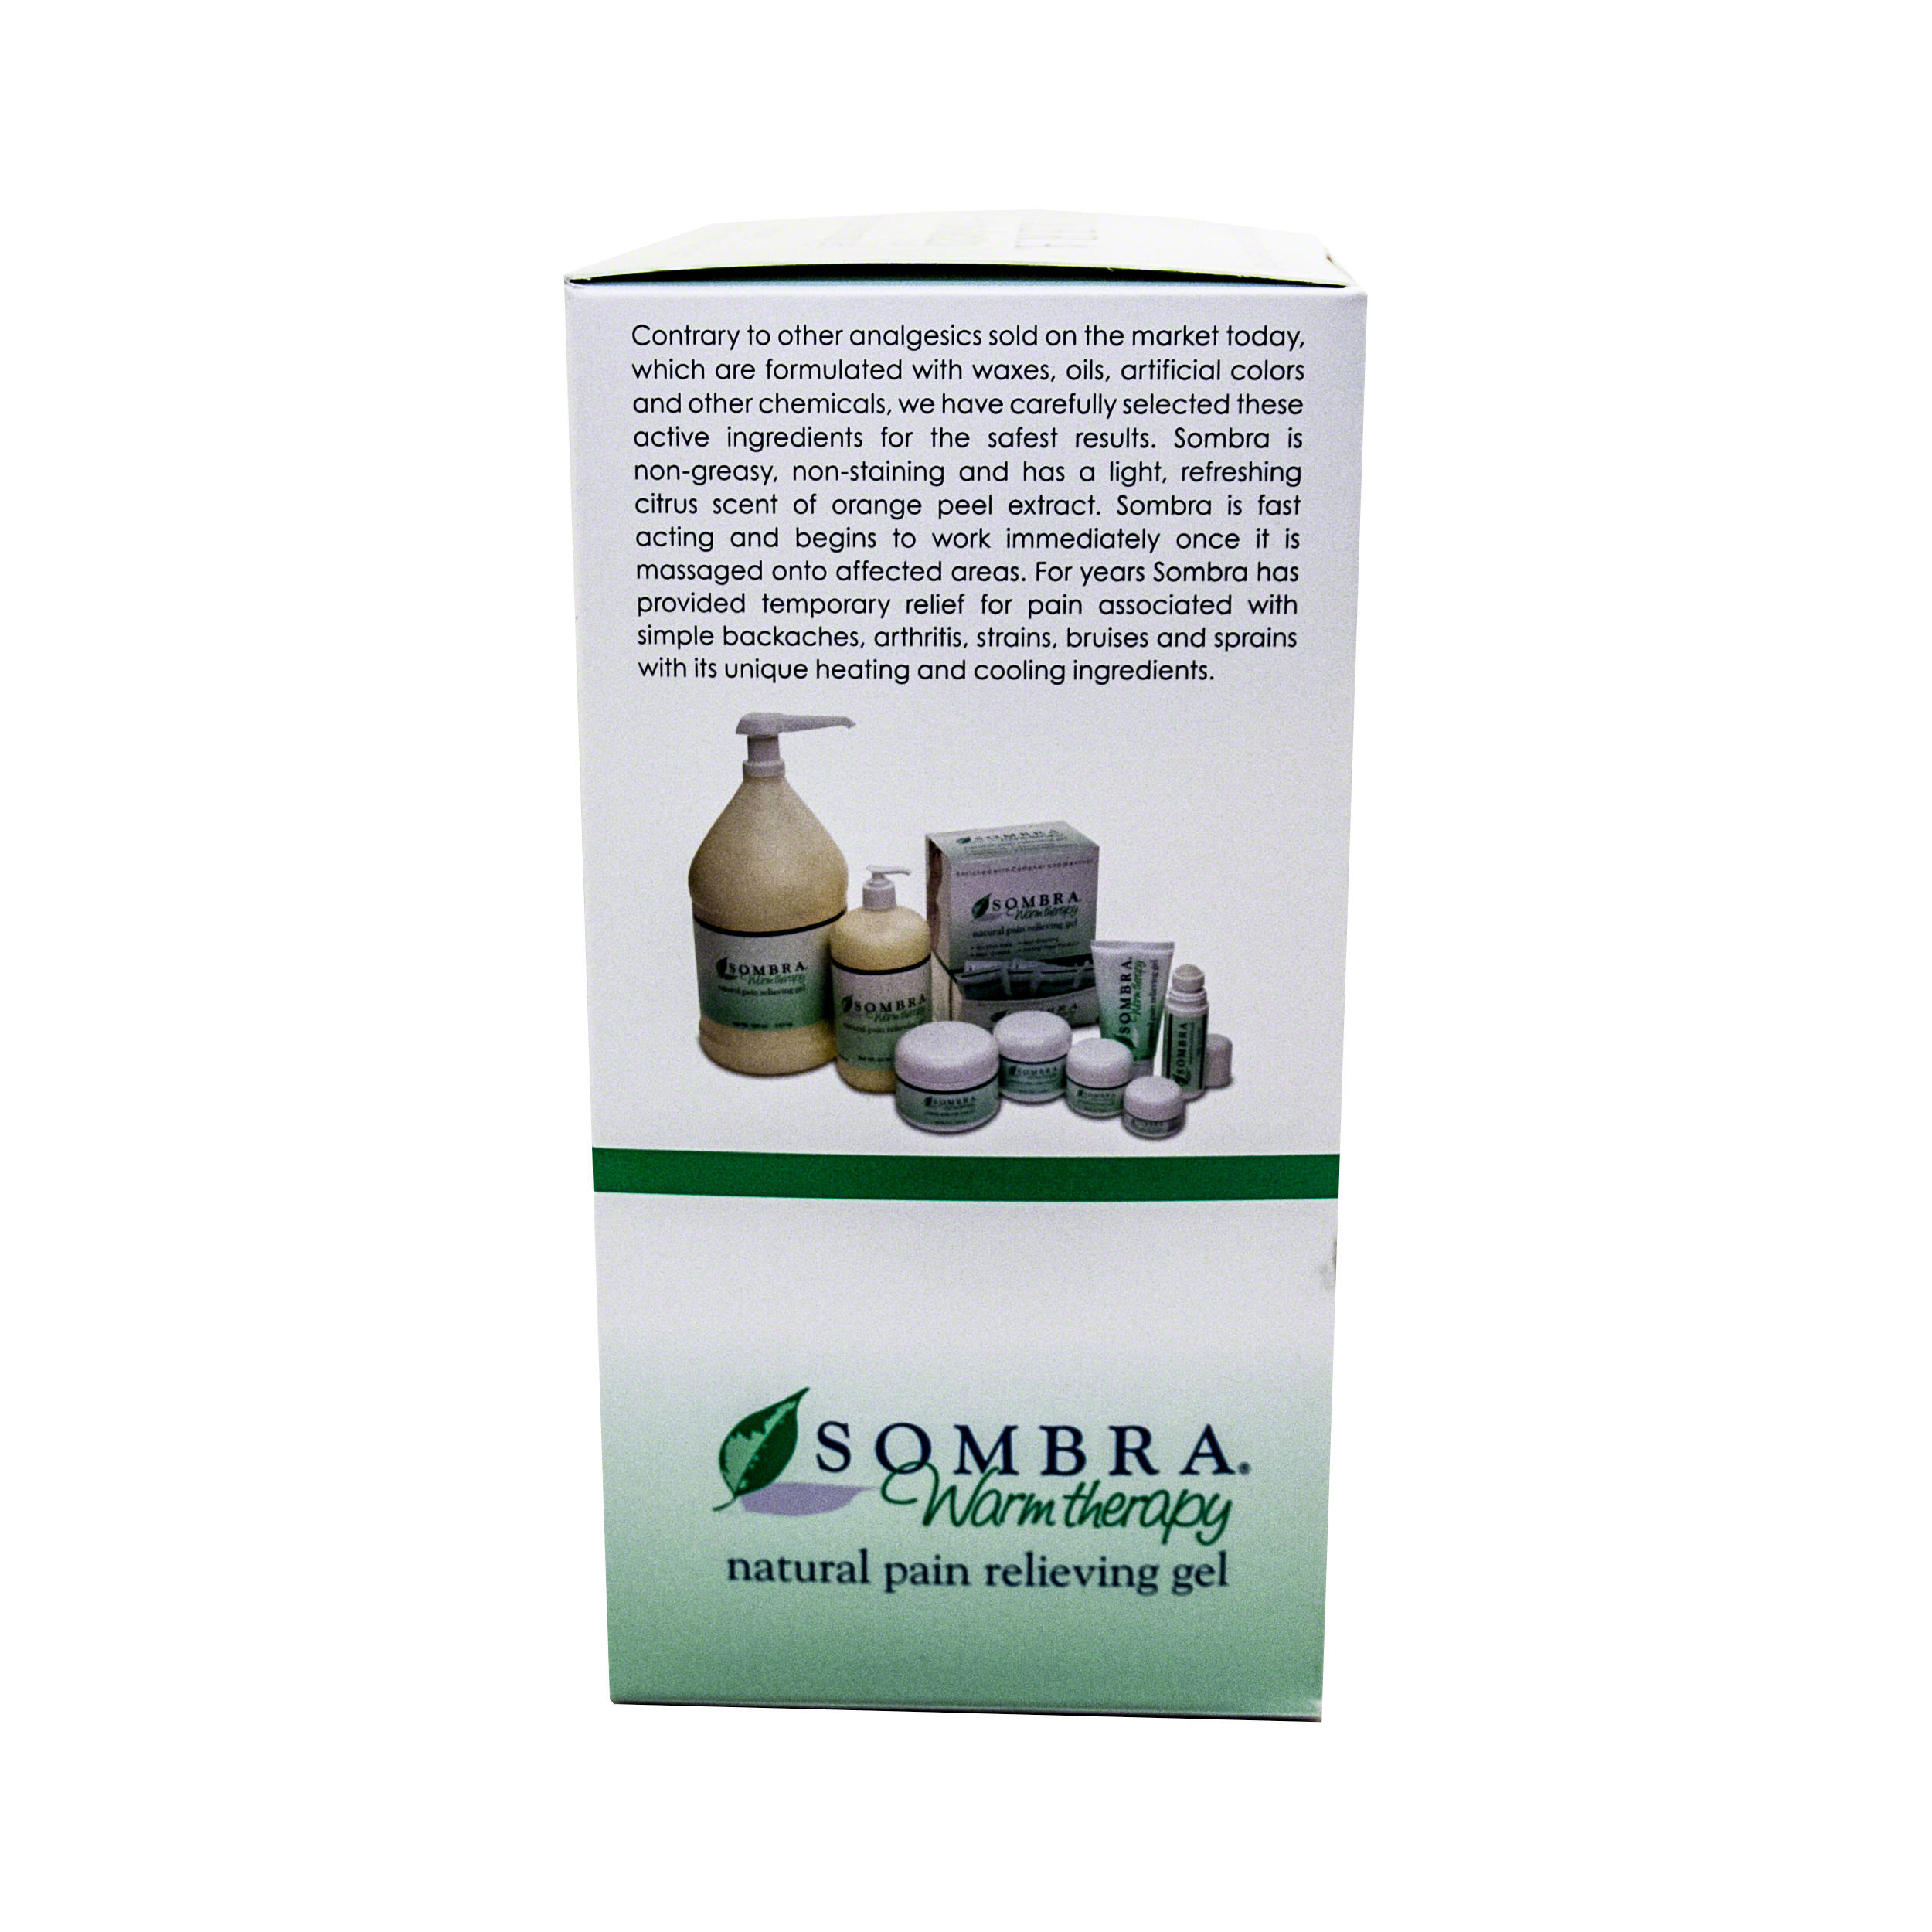 Sombra-Warm-Therapy-Natural-Pain-Relieving-Gel thumbnail 31